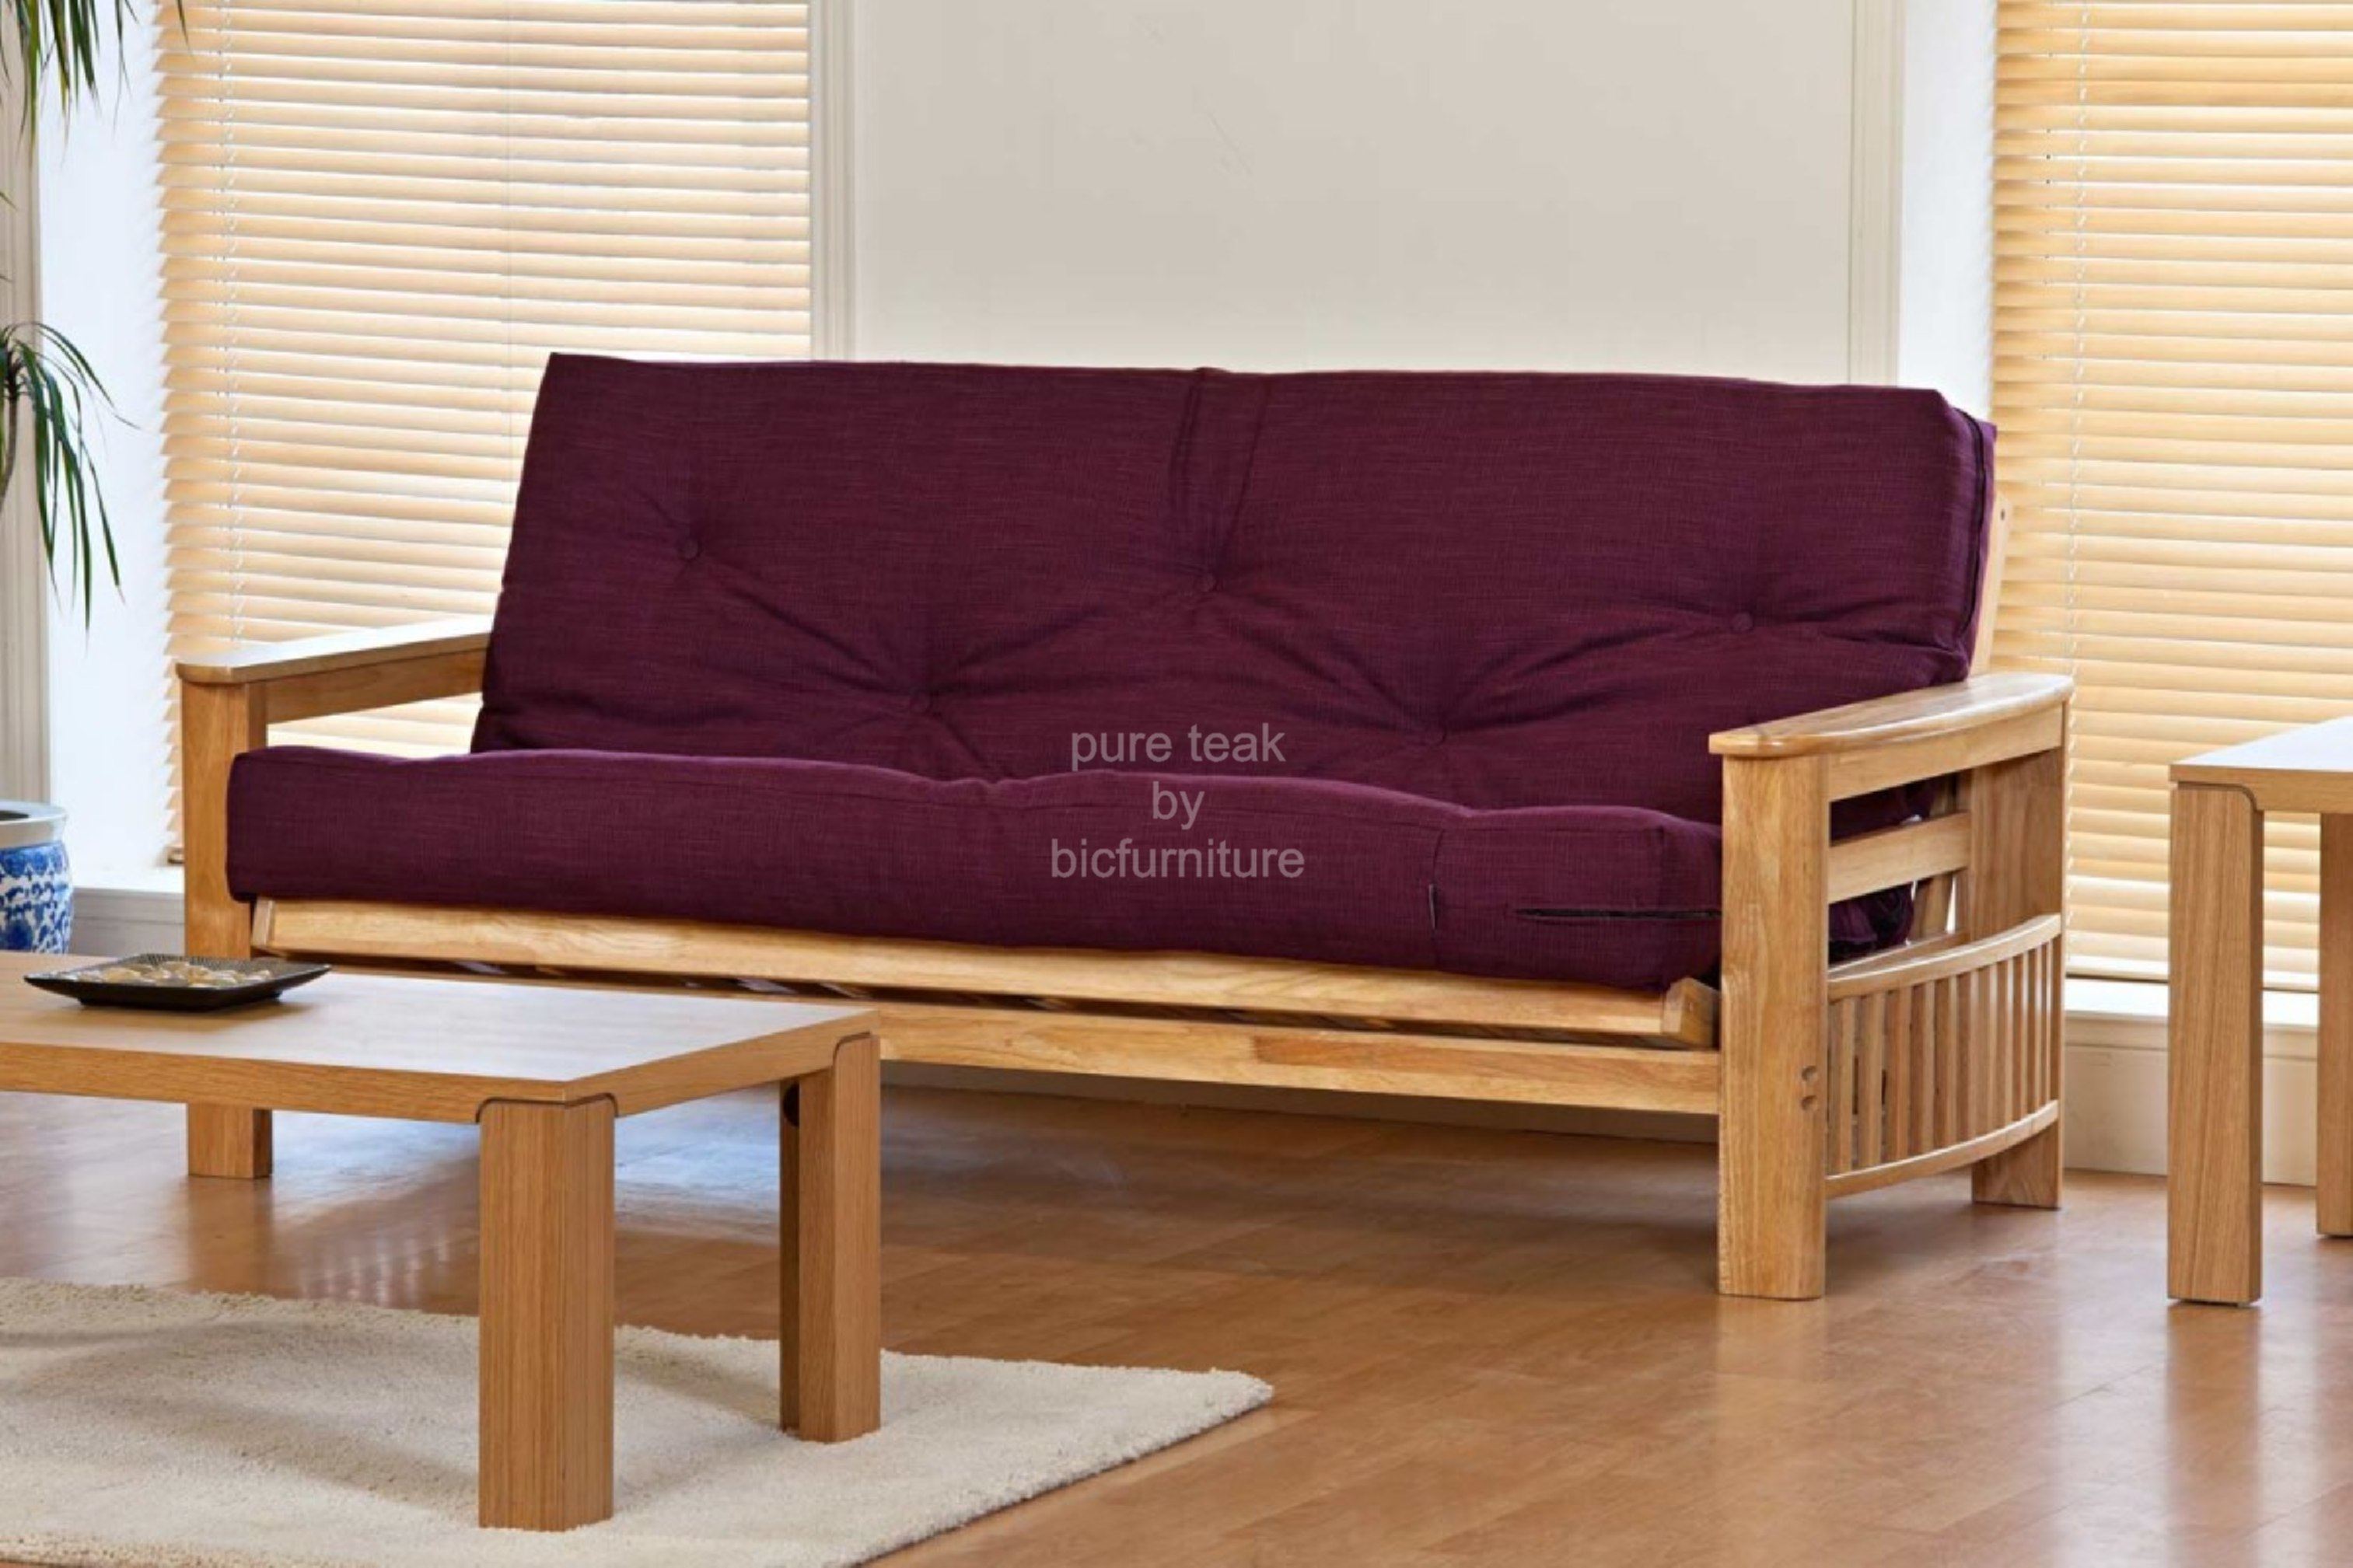 Open style sofa cum bed made in teakwood